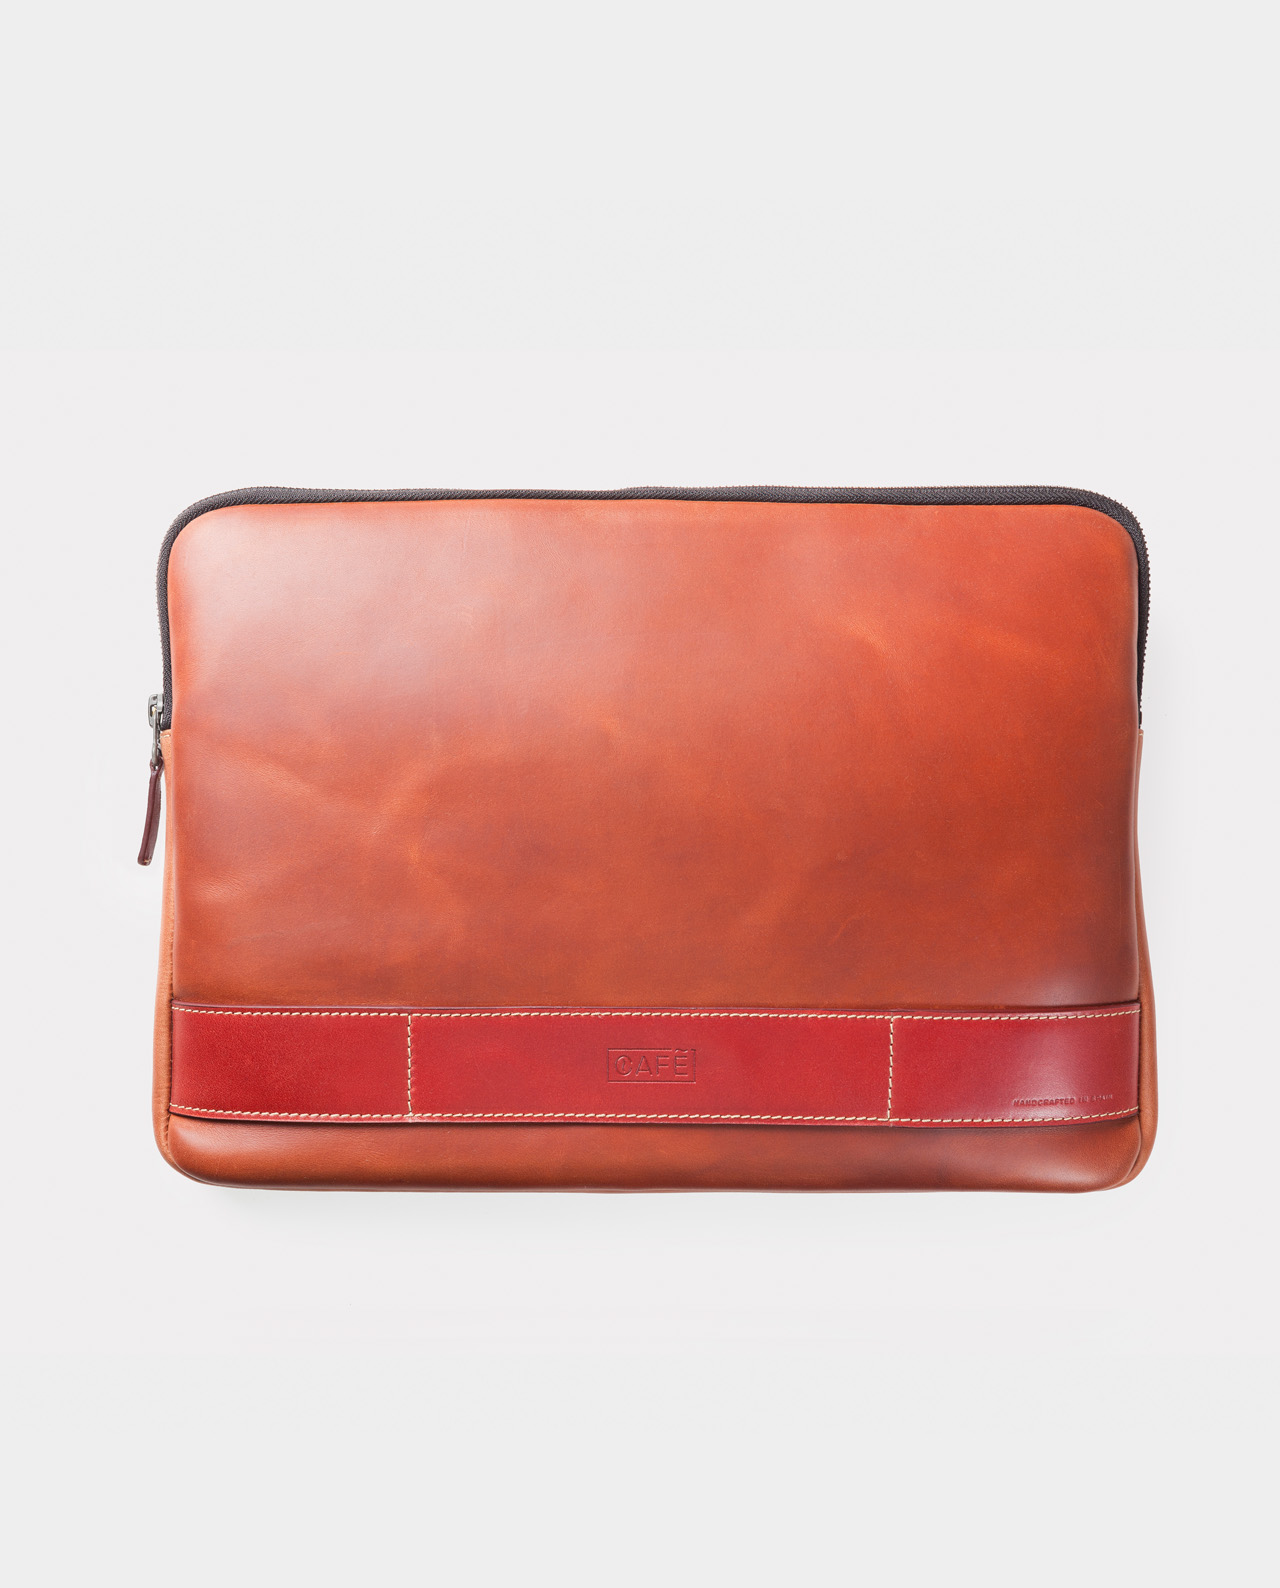 leather-portfolio-13-inches-Colombia-Roasted-handcrafted